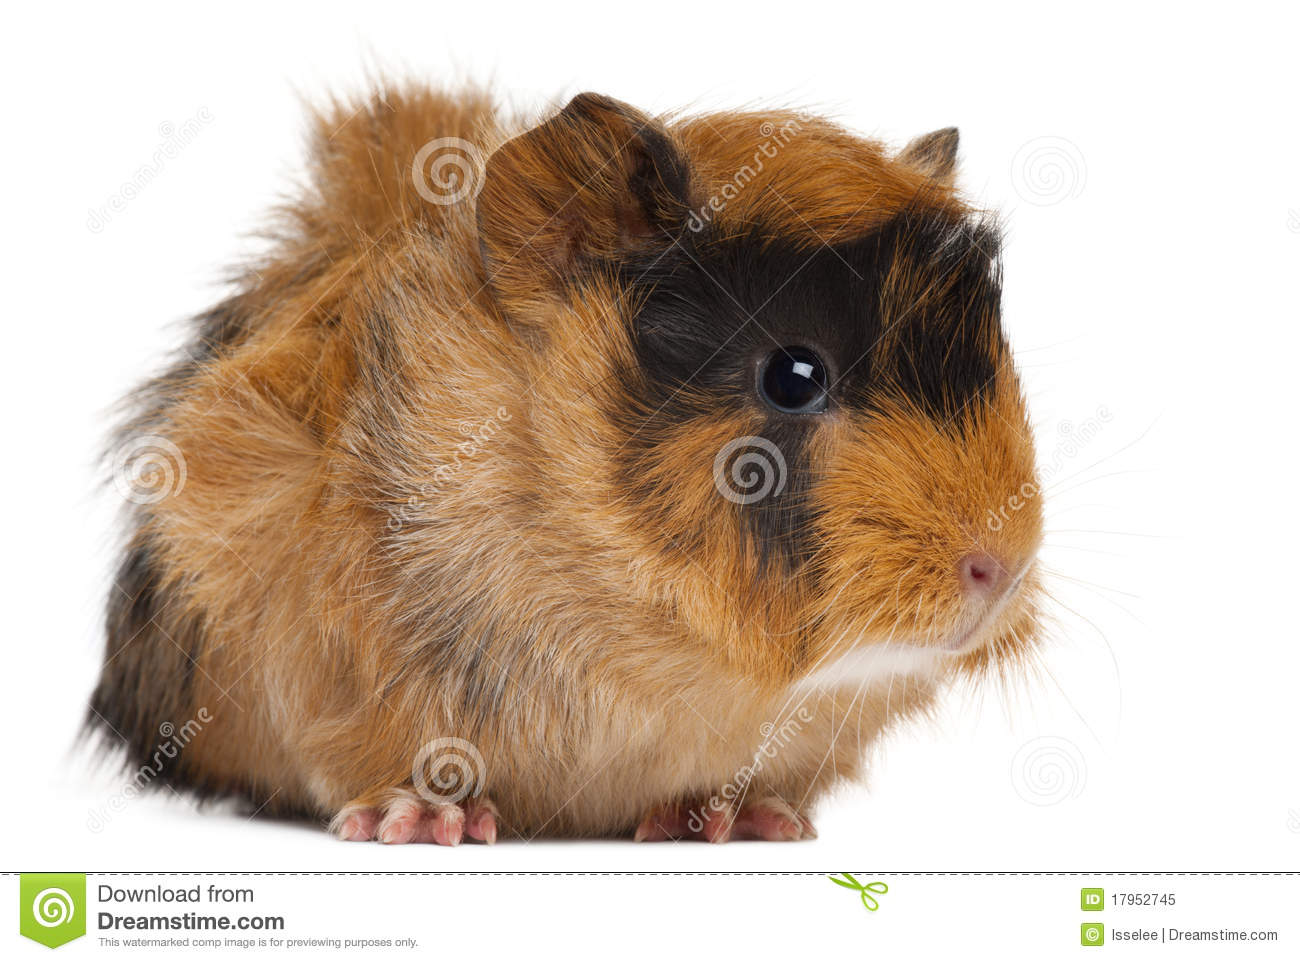 Guinea pig royalty free stock photo image 17952745 for Guinea pig pictures free